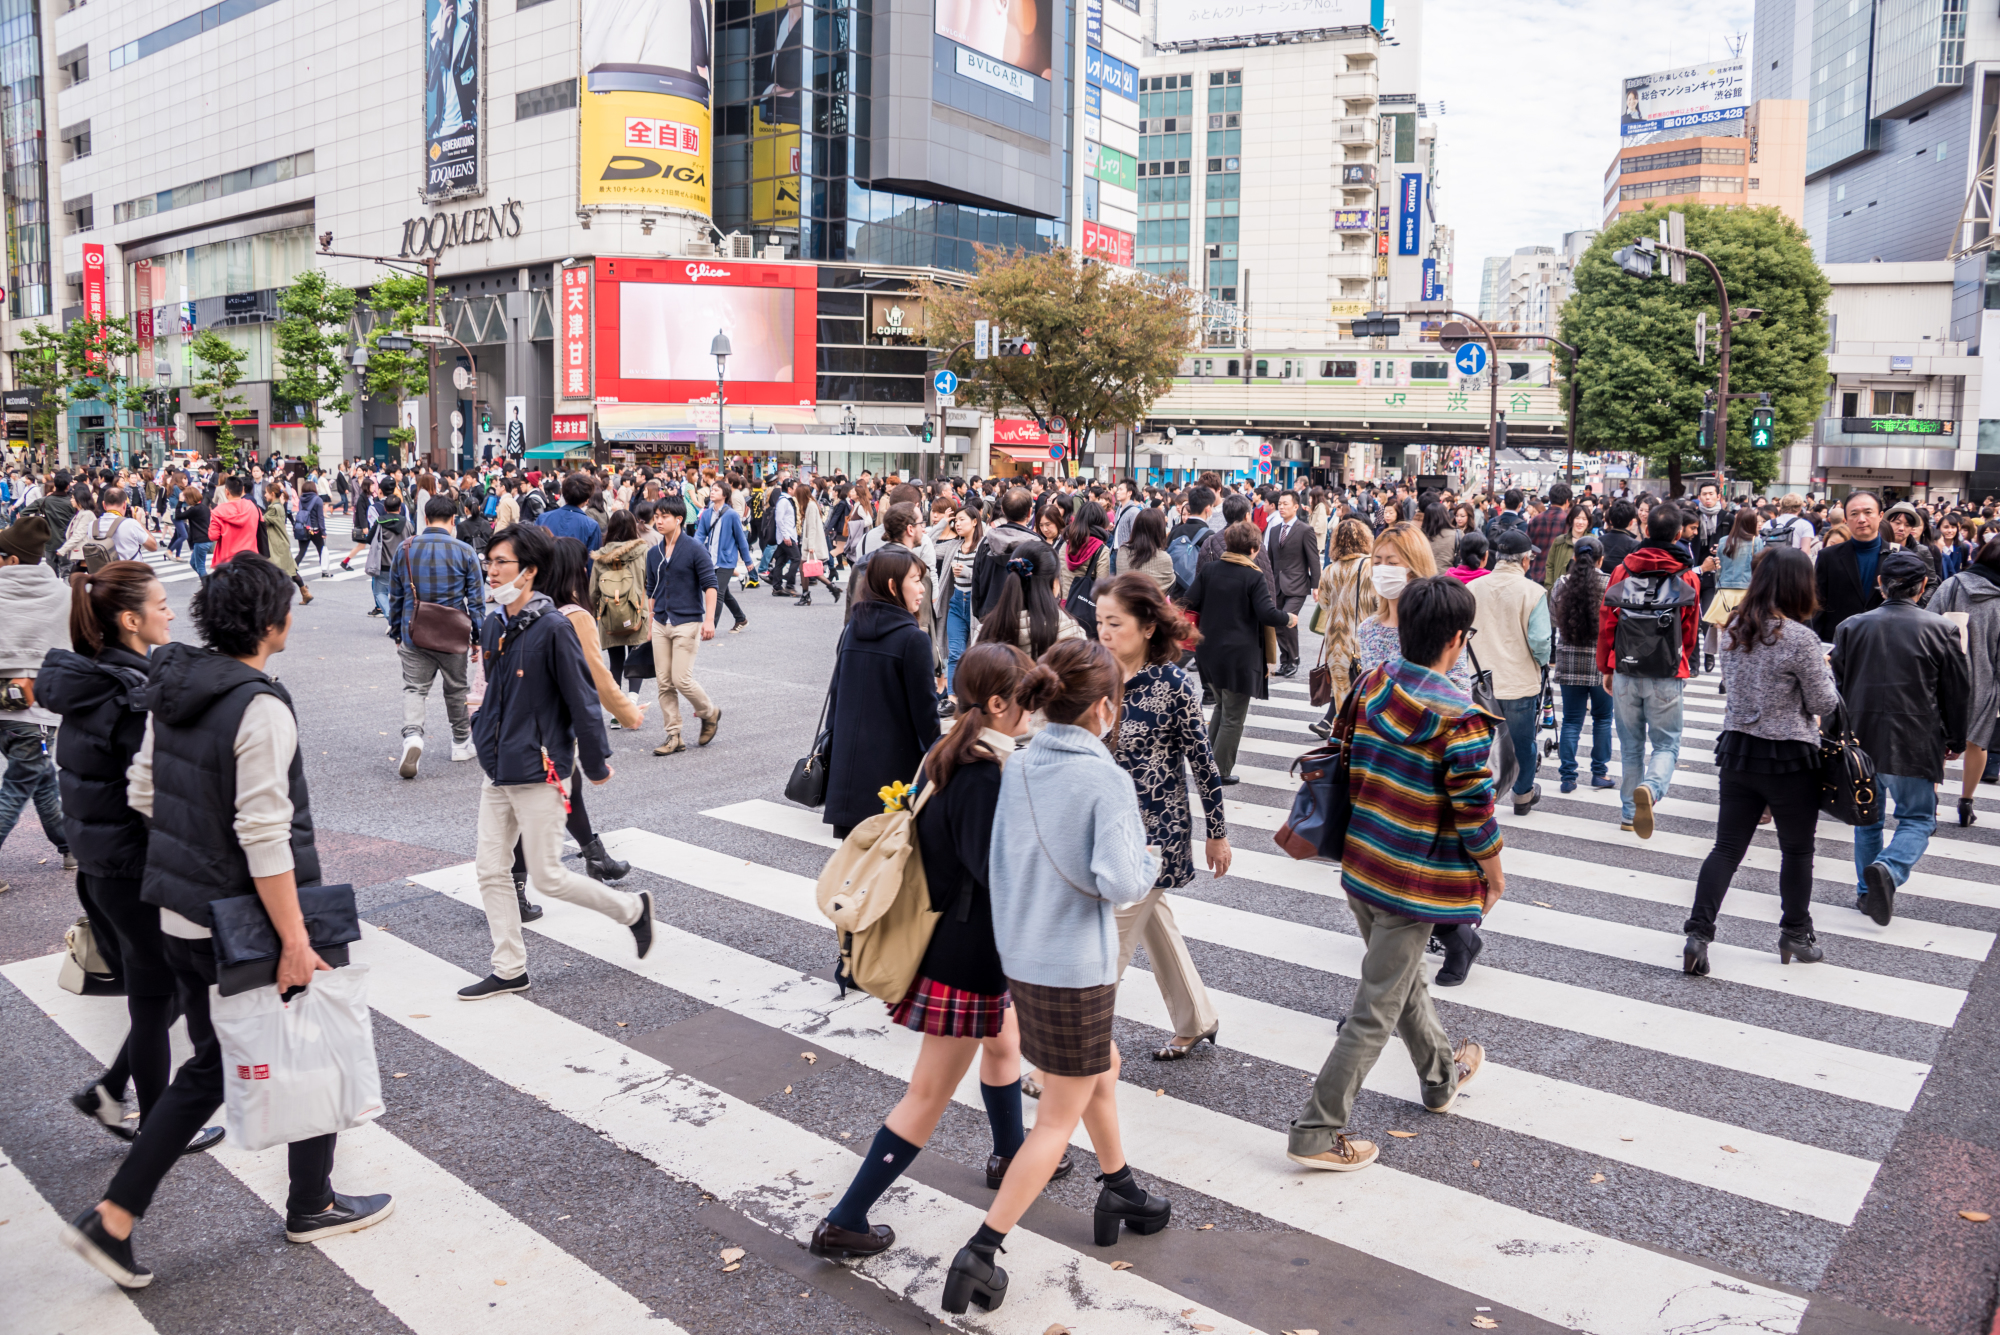 Young Japanese today prefer security and show little of the 'animal spirit' needed to help realize Prime Minister Shinzo Abe's vision of a 'great entrepreneurial nation,' experts say. | ISTOCK